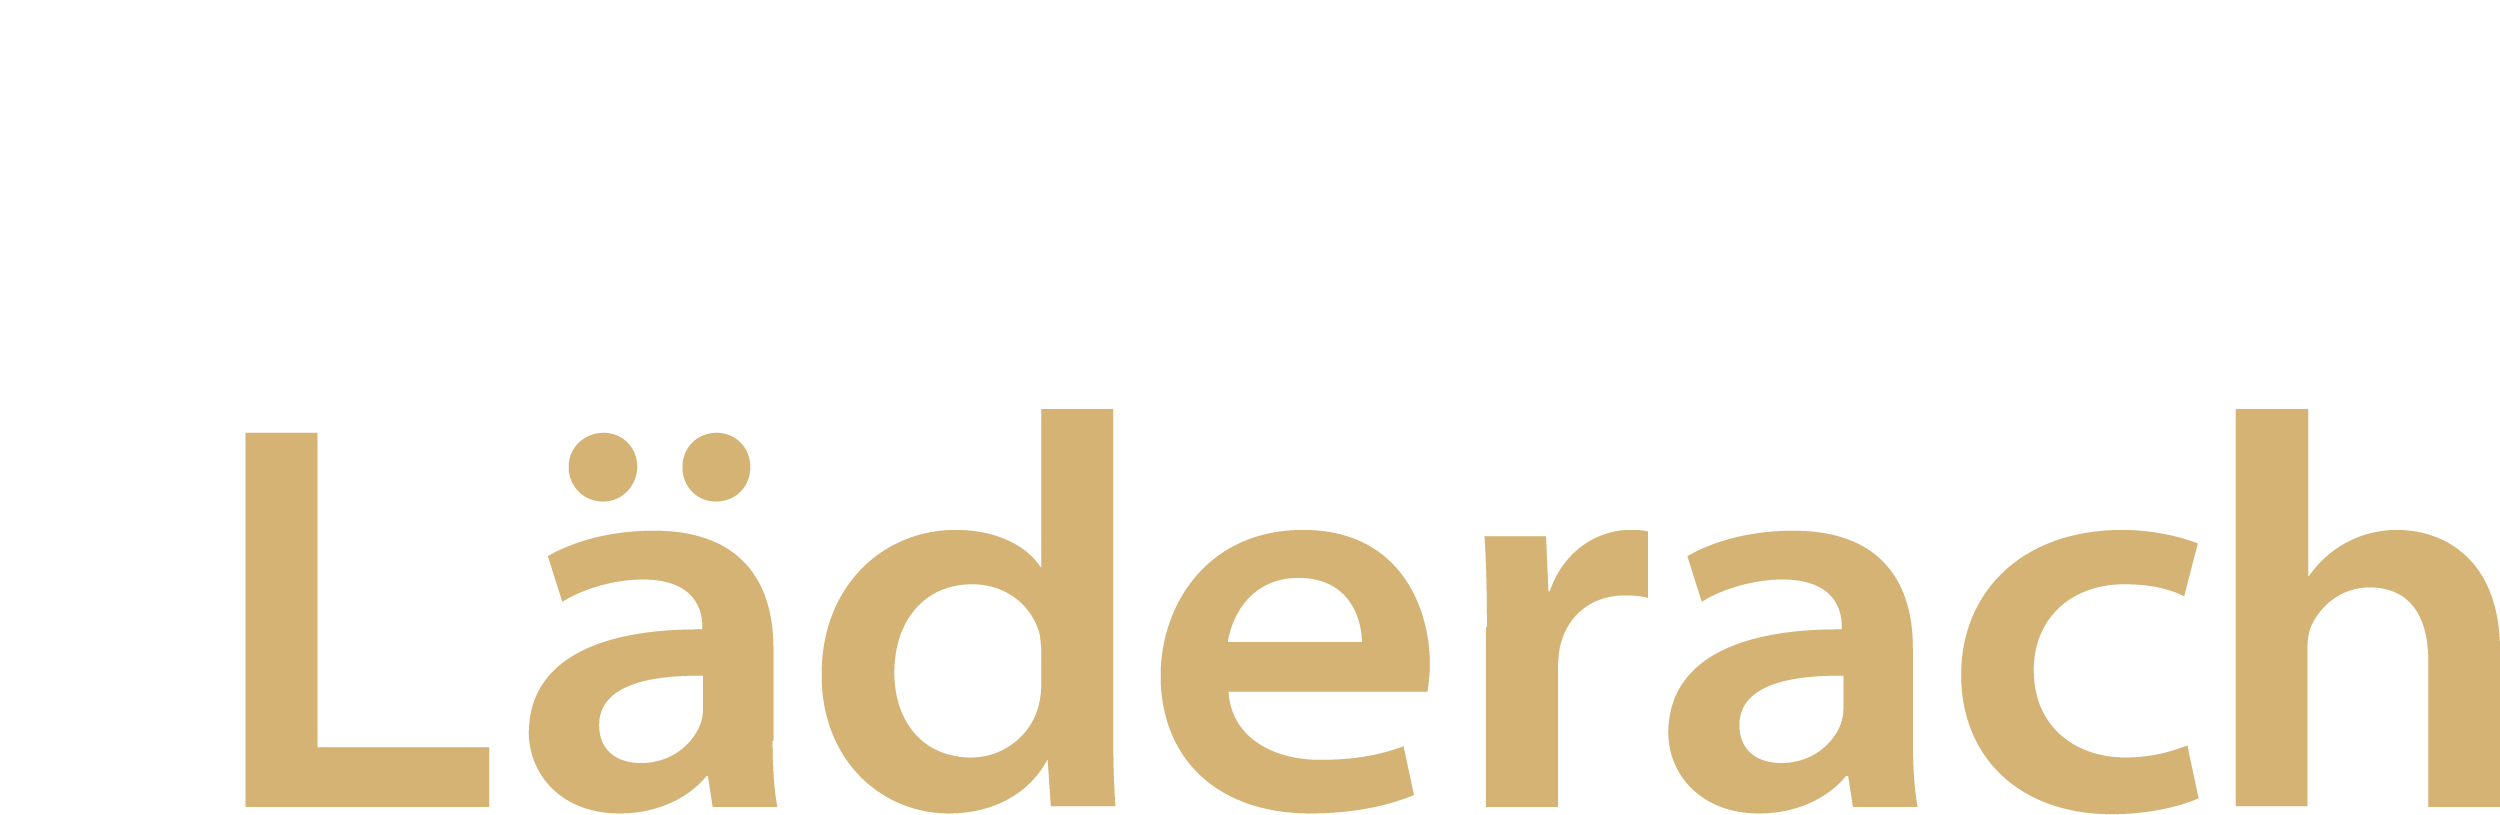 Logo_House_of_Laederach